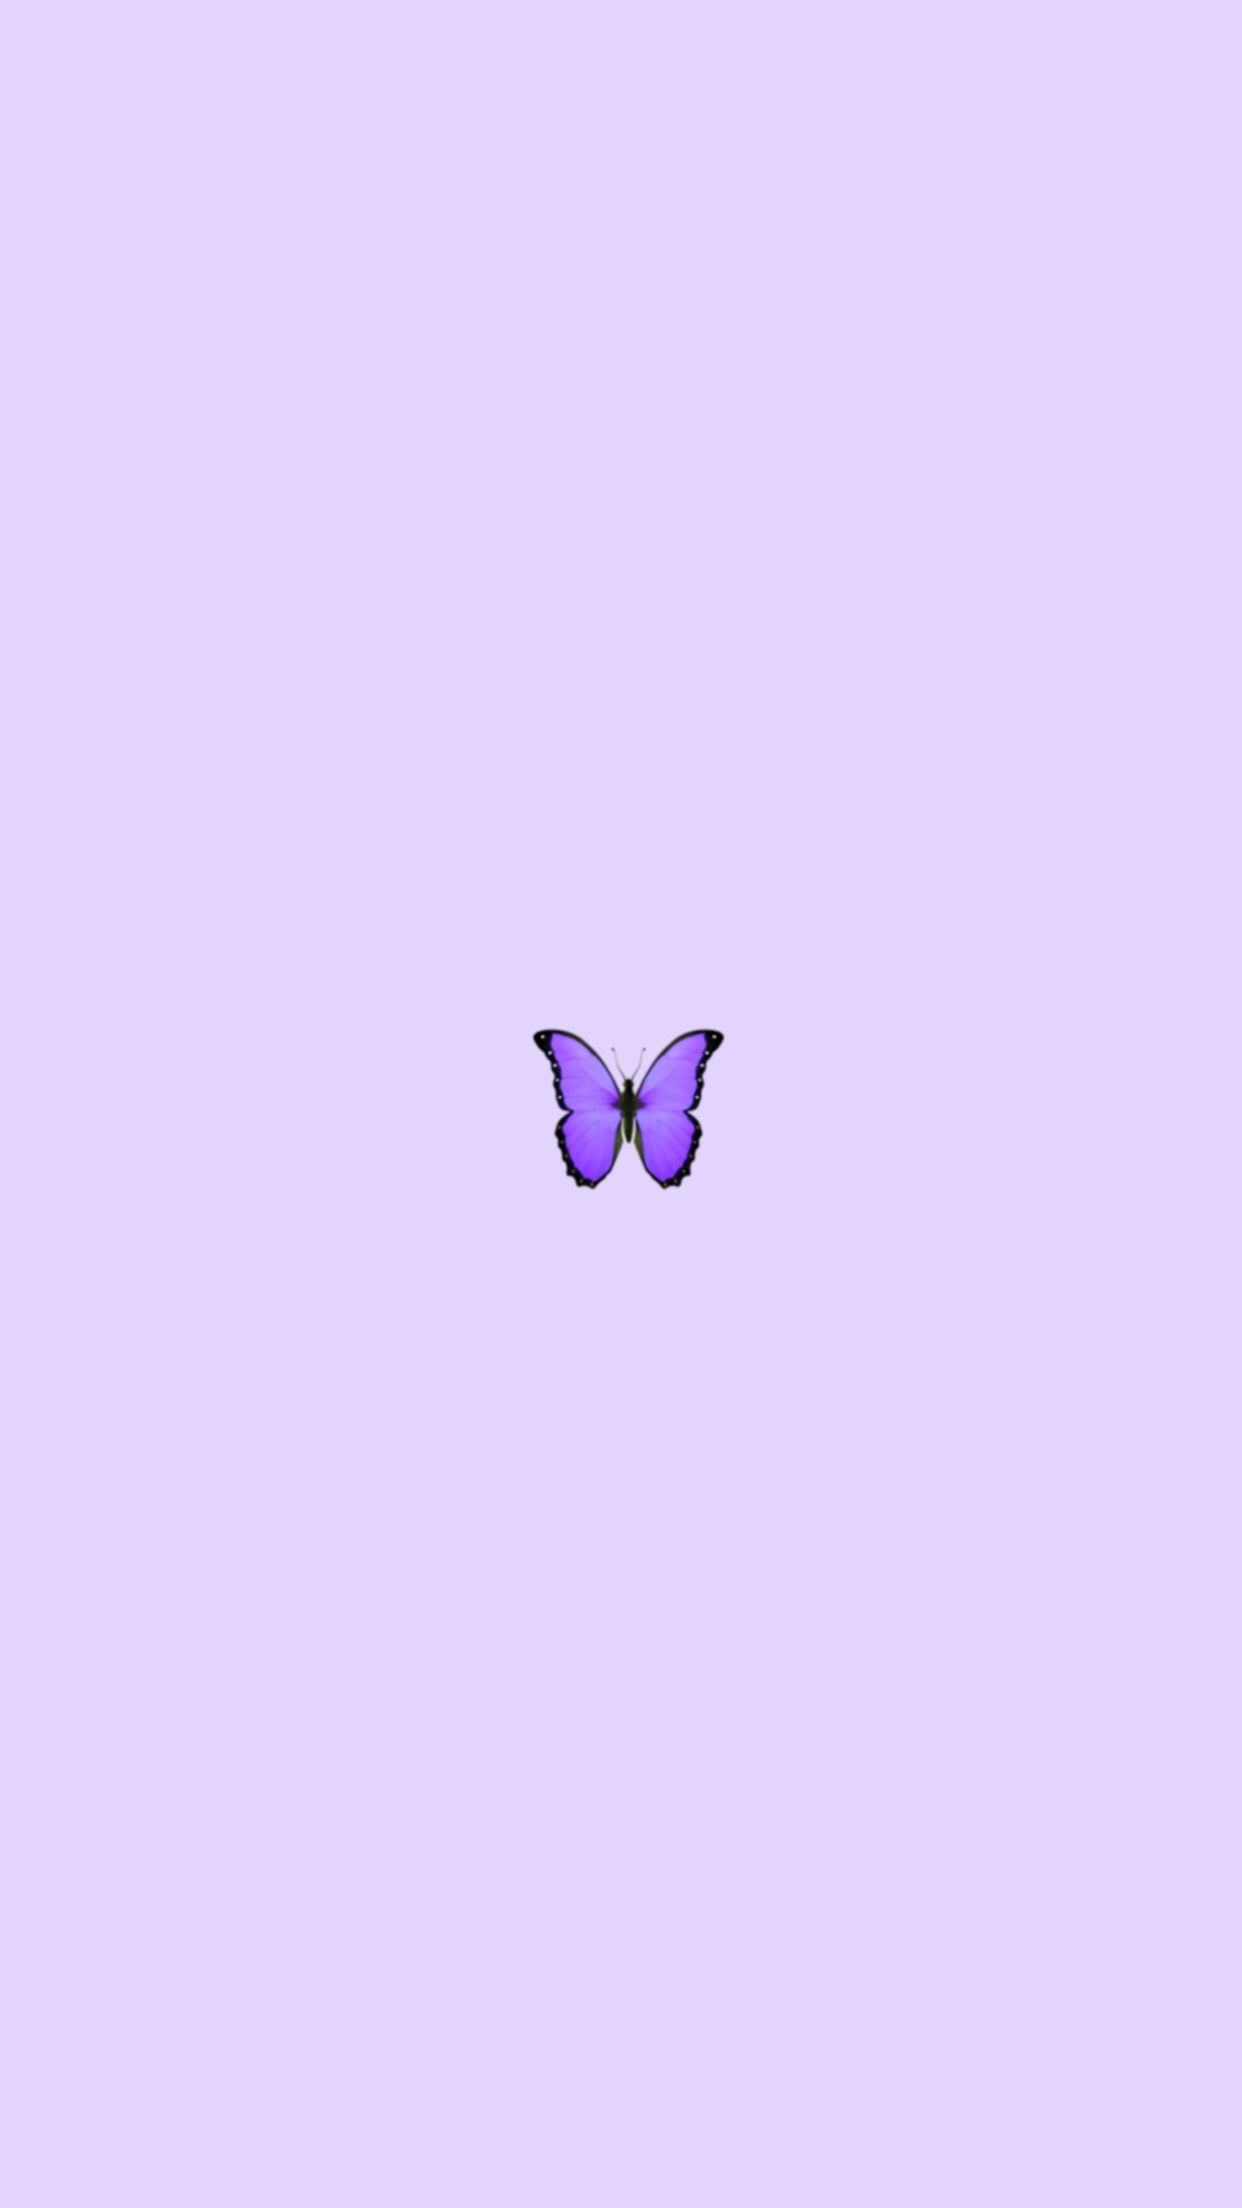 Aesthetic Purple Butterfly Wallpapers Wallpaper Cave